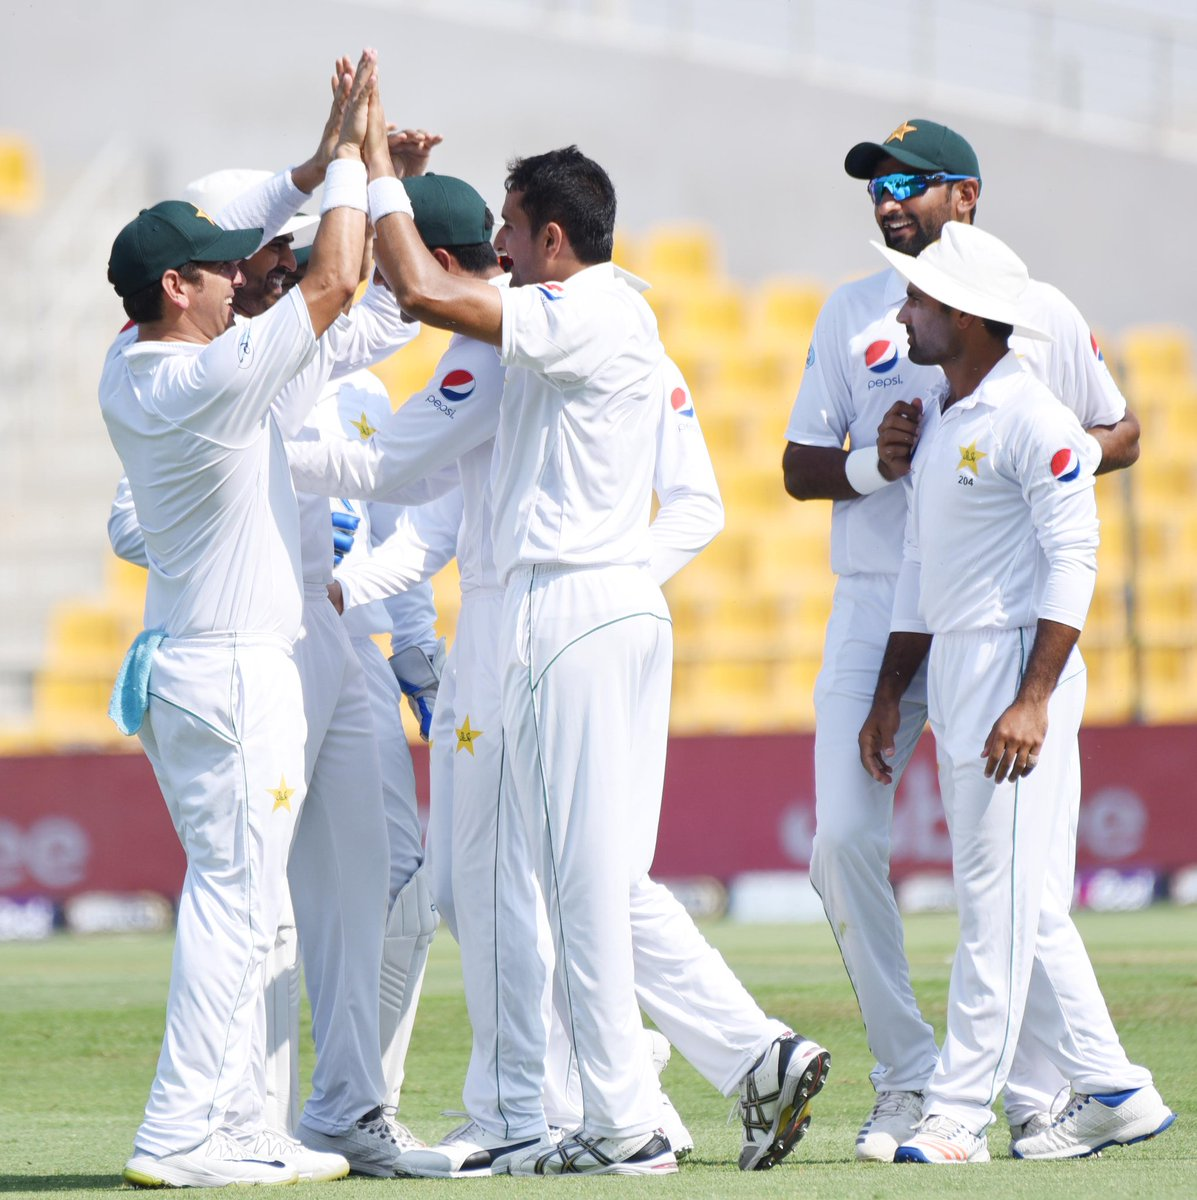 Pakistan Cricket On Twitter Day 2 Tea Break Another Session Dominated By Pakistan Top Order Led By Fakhar Zaman Take The Lead To 188 Pakistan 51 1 11 0 Ov Live Updates Https T Co Ohkluv1tni Pakvaus